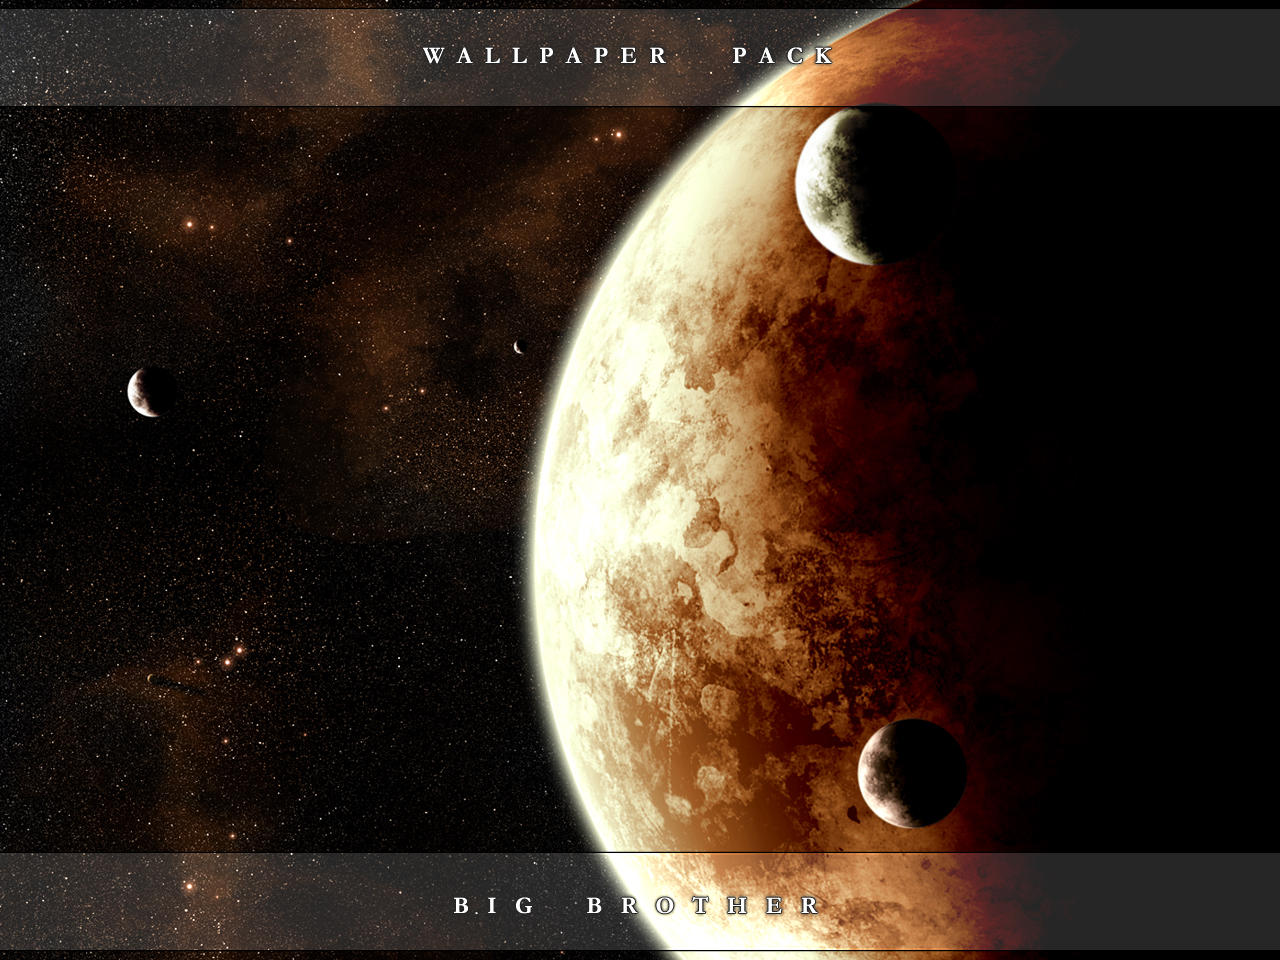 Wallpaper Pack :: Big Brother by tibro